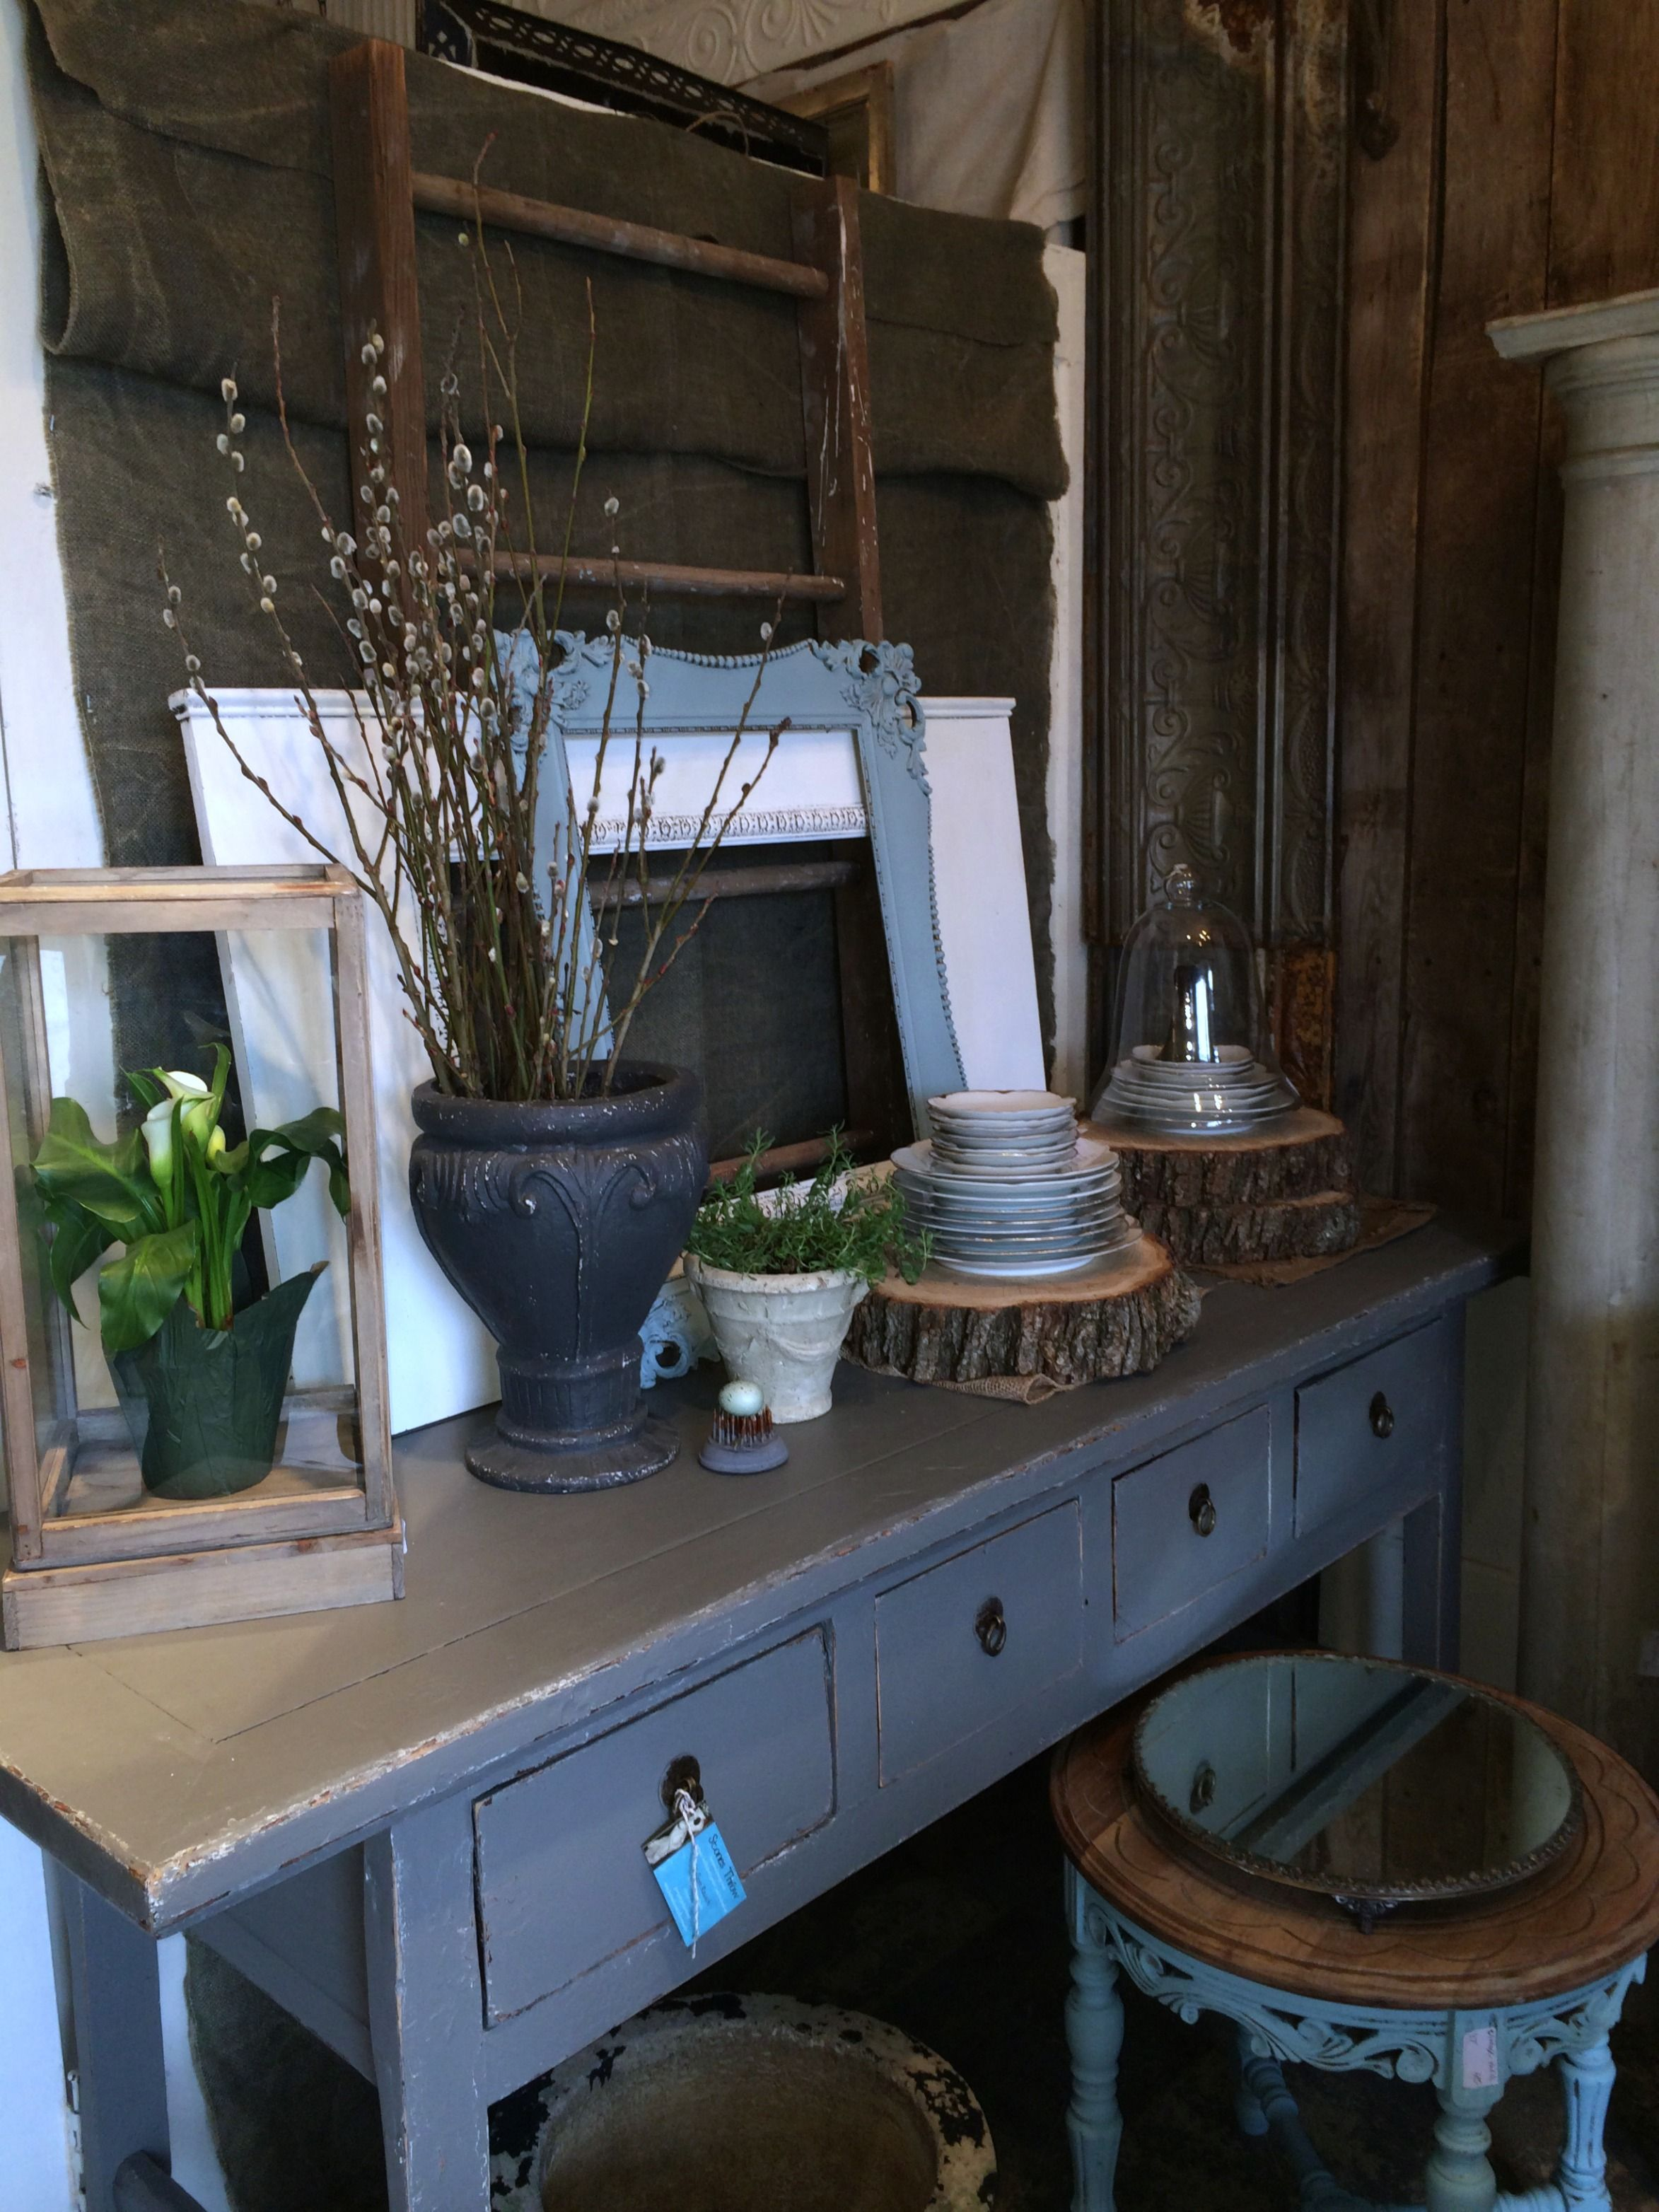 Pin by Second Hand Rose on Unique cabinets, center islands ...